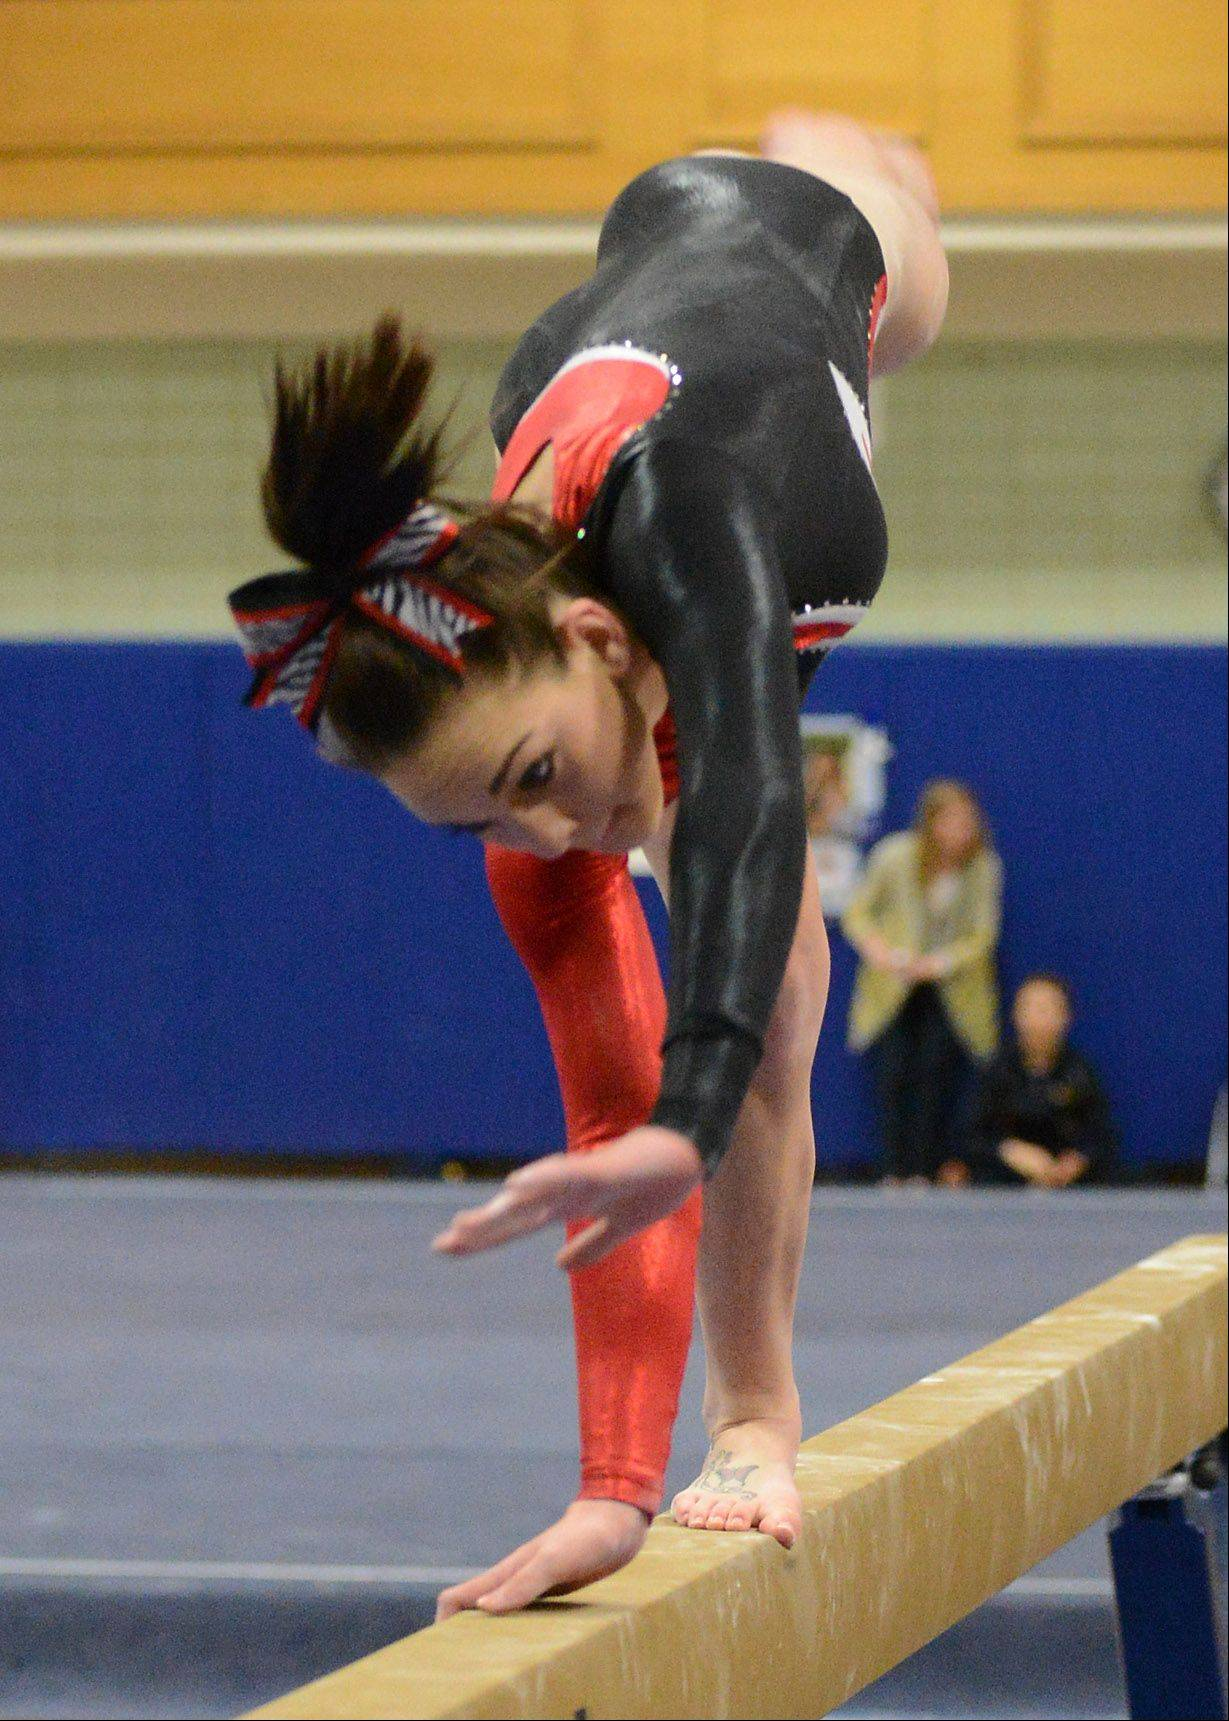 Alyssa Konkel of the U46 coop team starts her dismount on the balance beam during regional gymnastics action at Geneva High School Thursday.